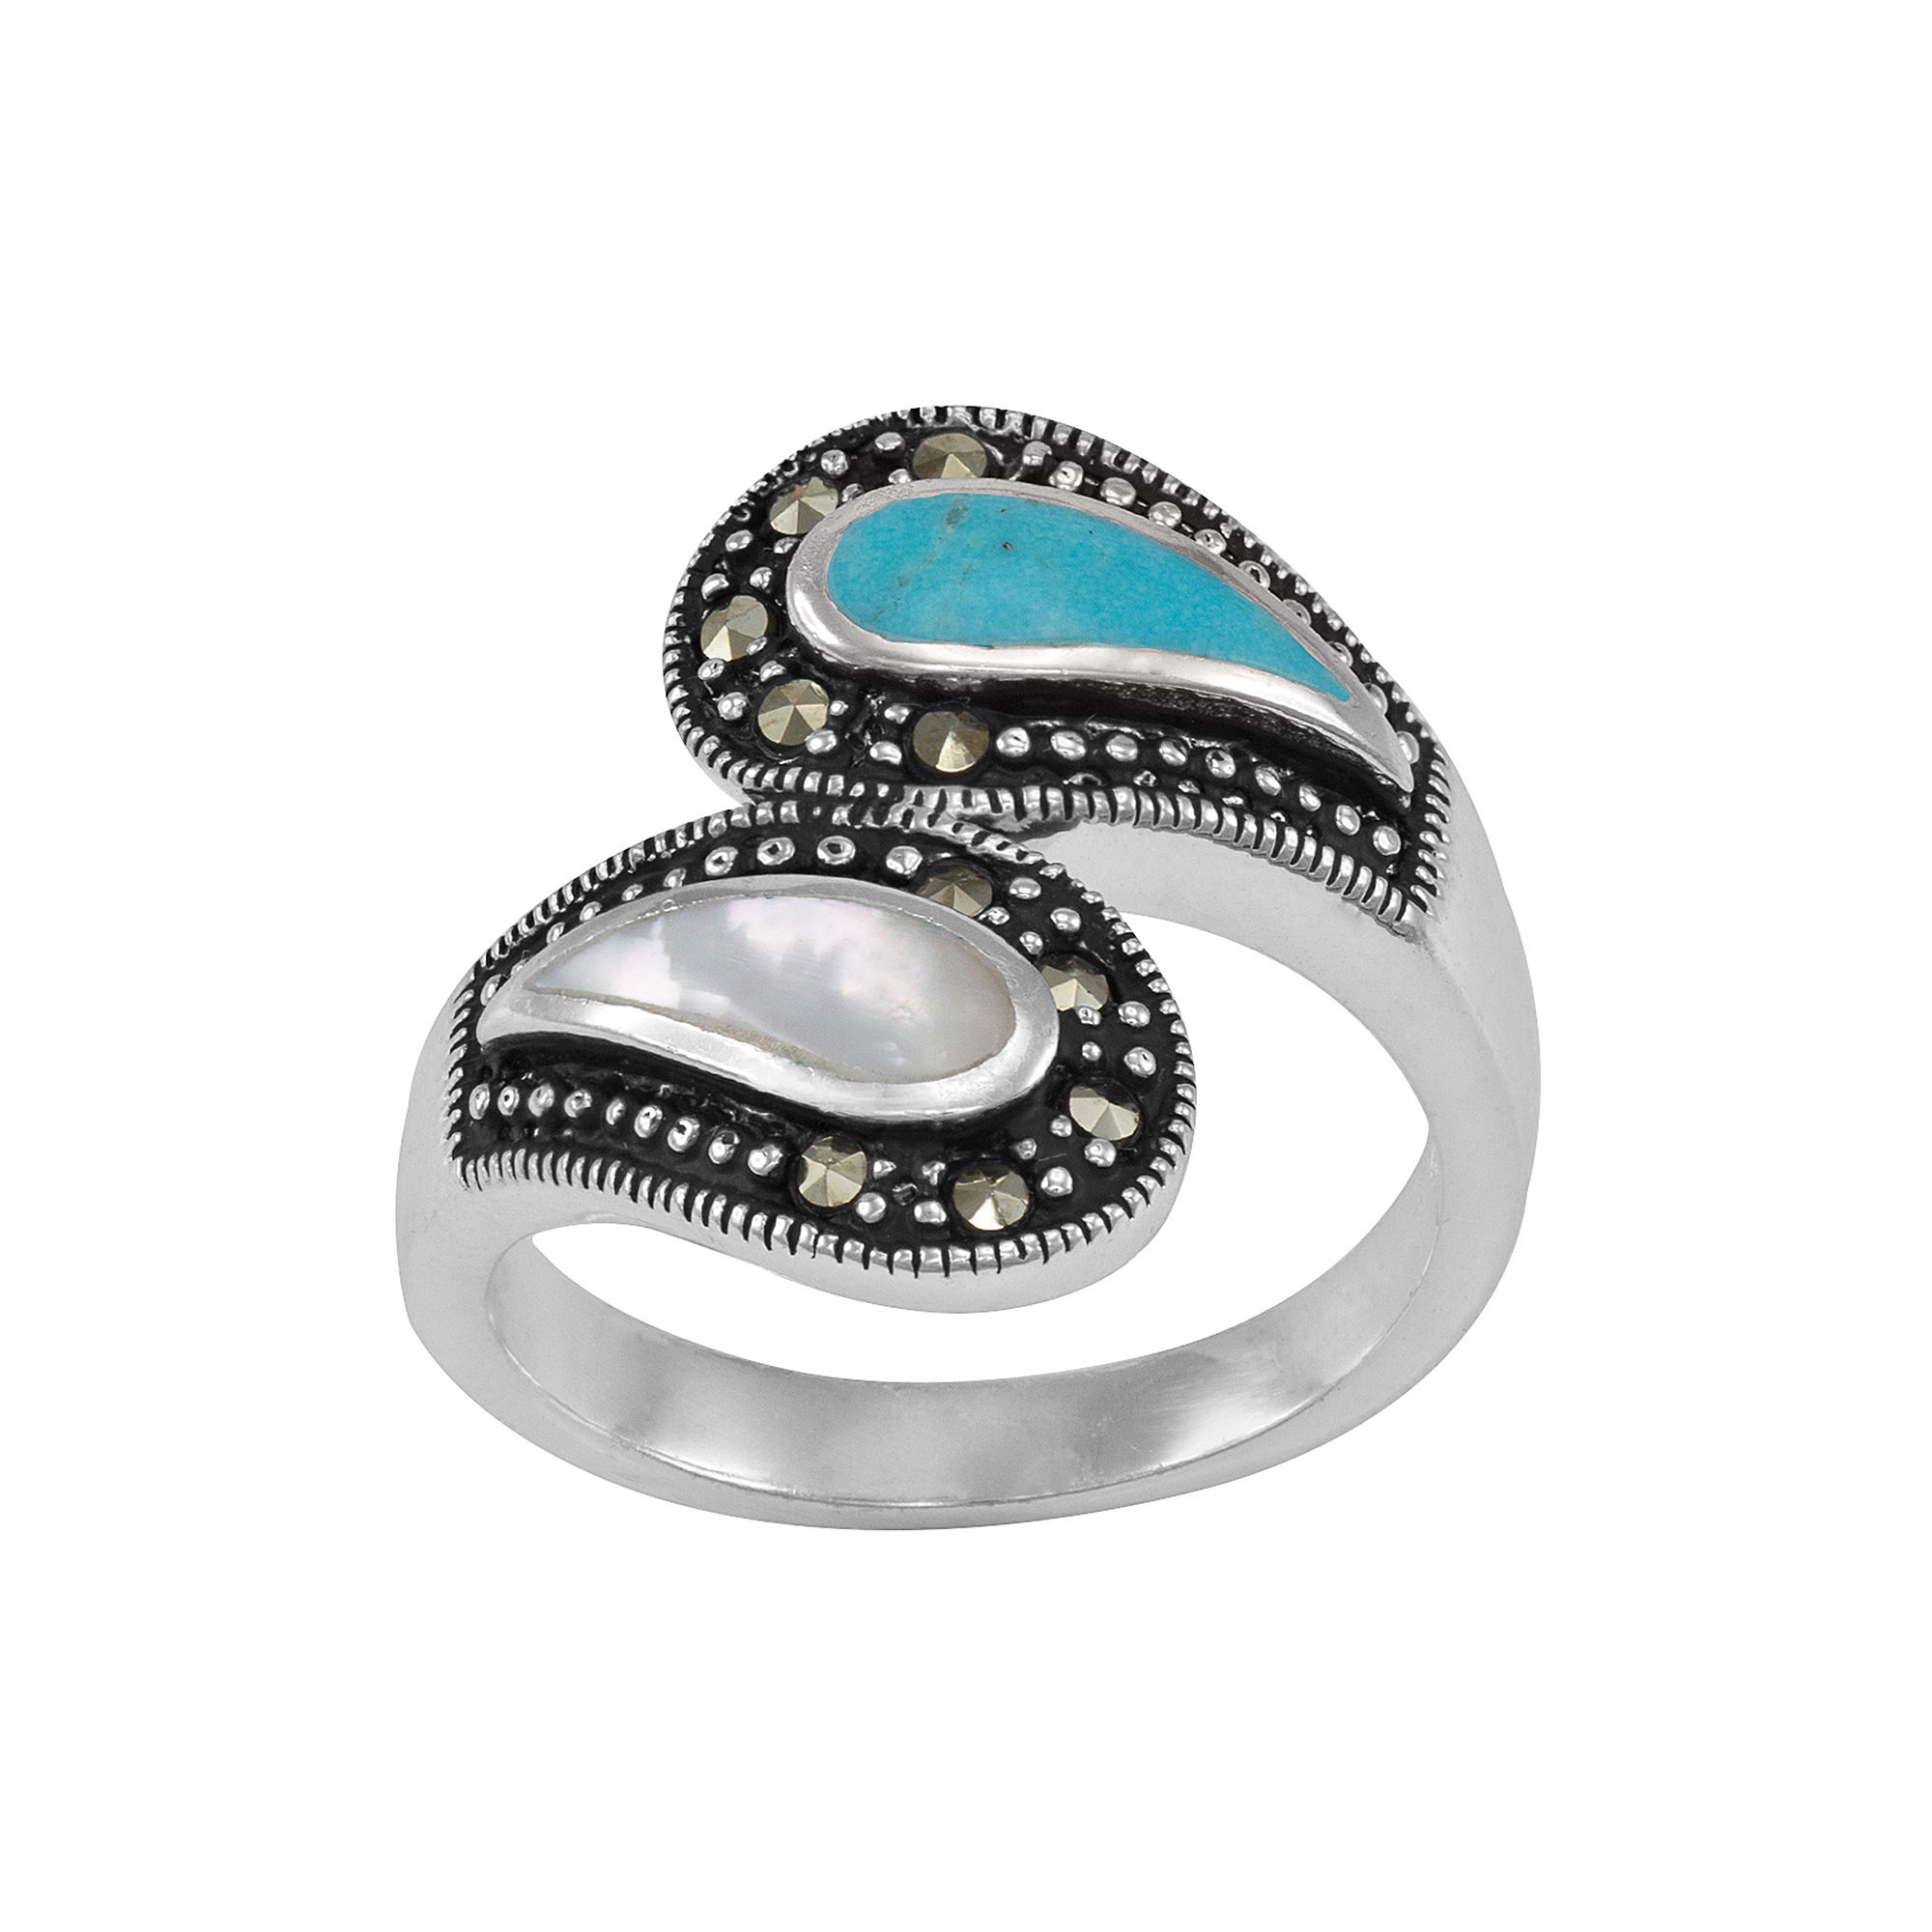 Simulated Turquoise and Mother-of-Pearl Bypass Ring